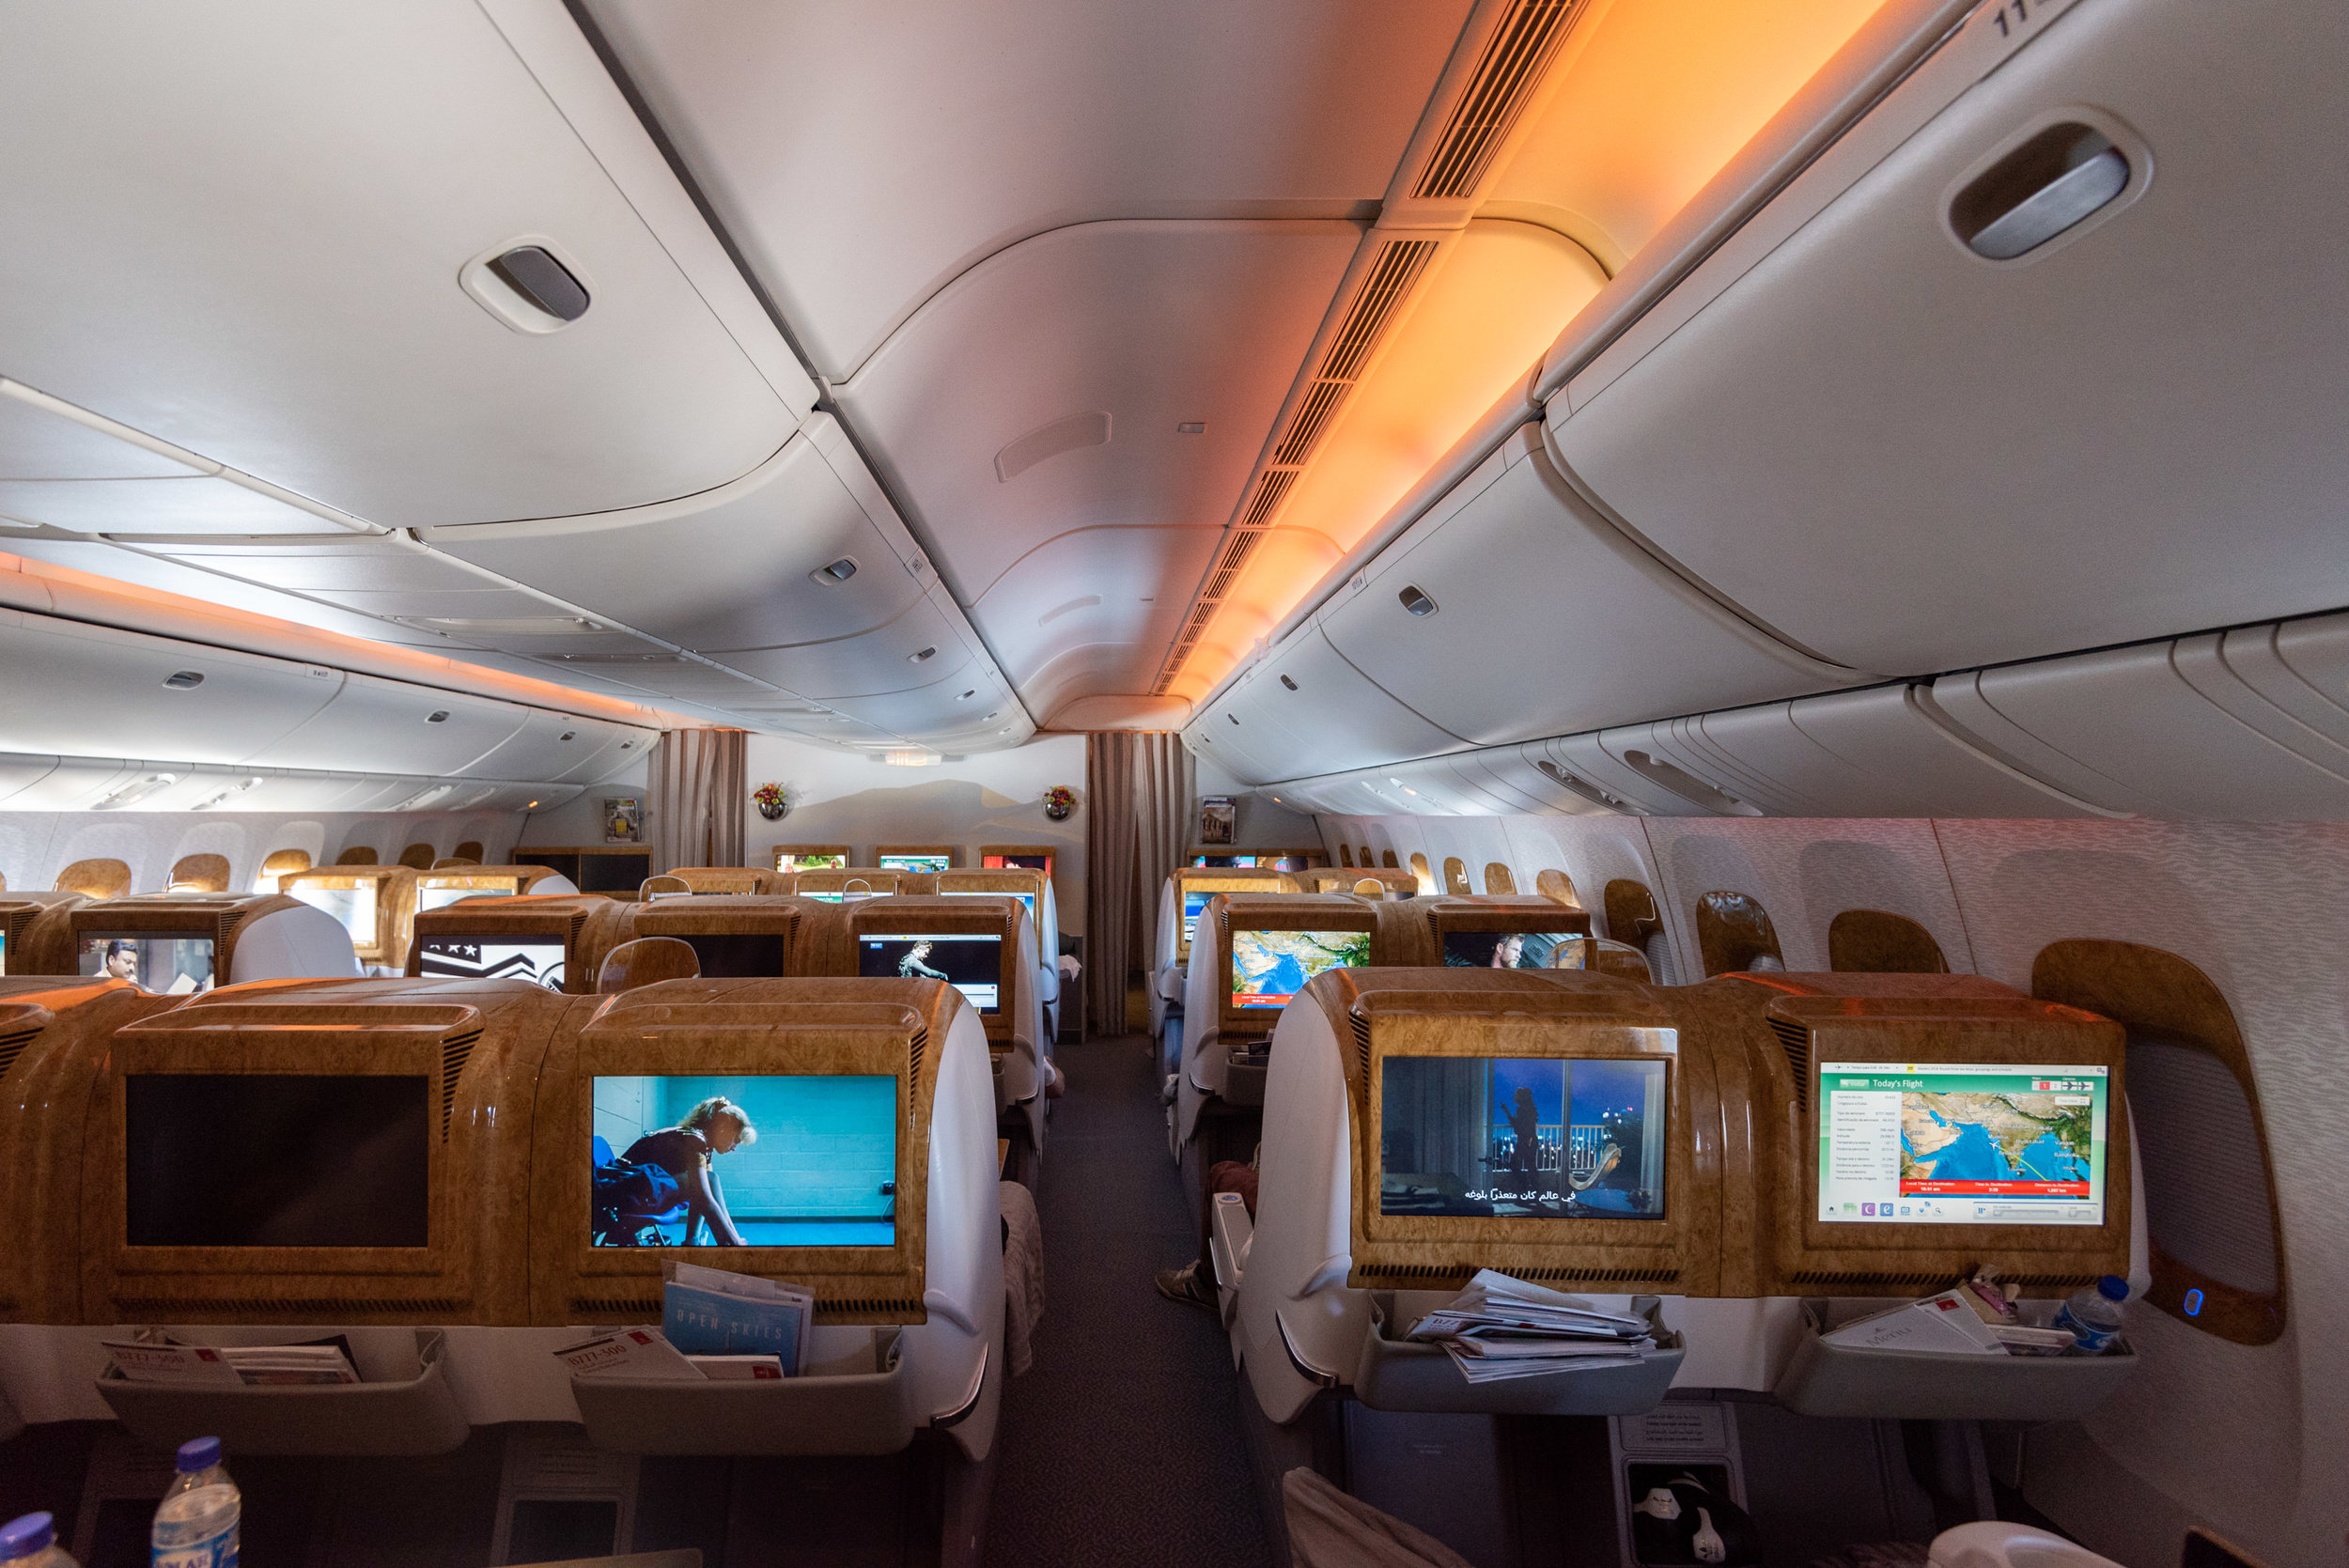 Larger Business Class Cabin  Emirates Business Class 777-300ER - SIN to DXB